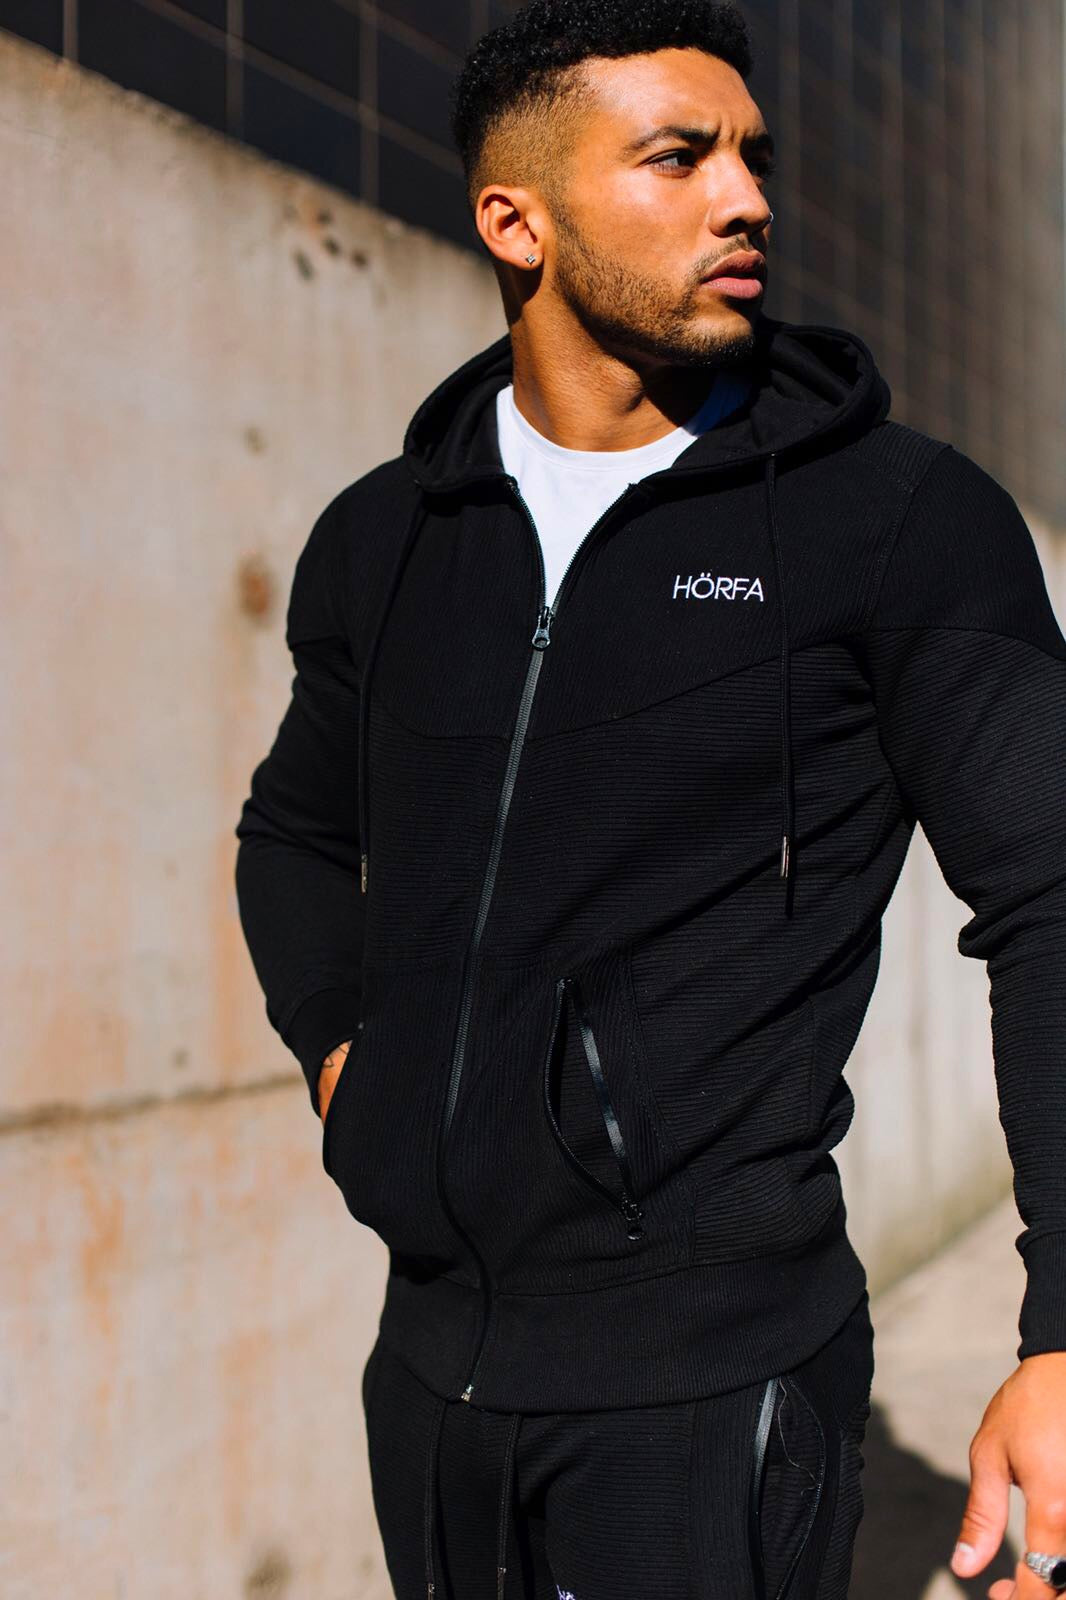 Shop for men's gym wear. Our tracksuit includes joggers and hoodie.